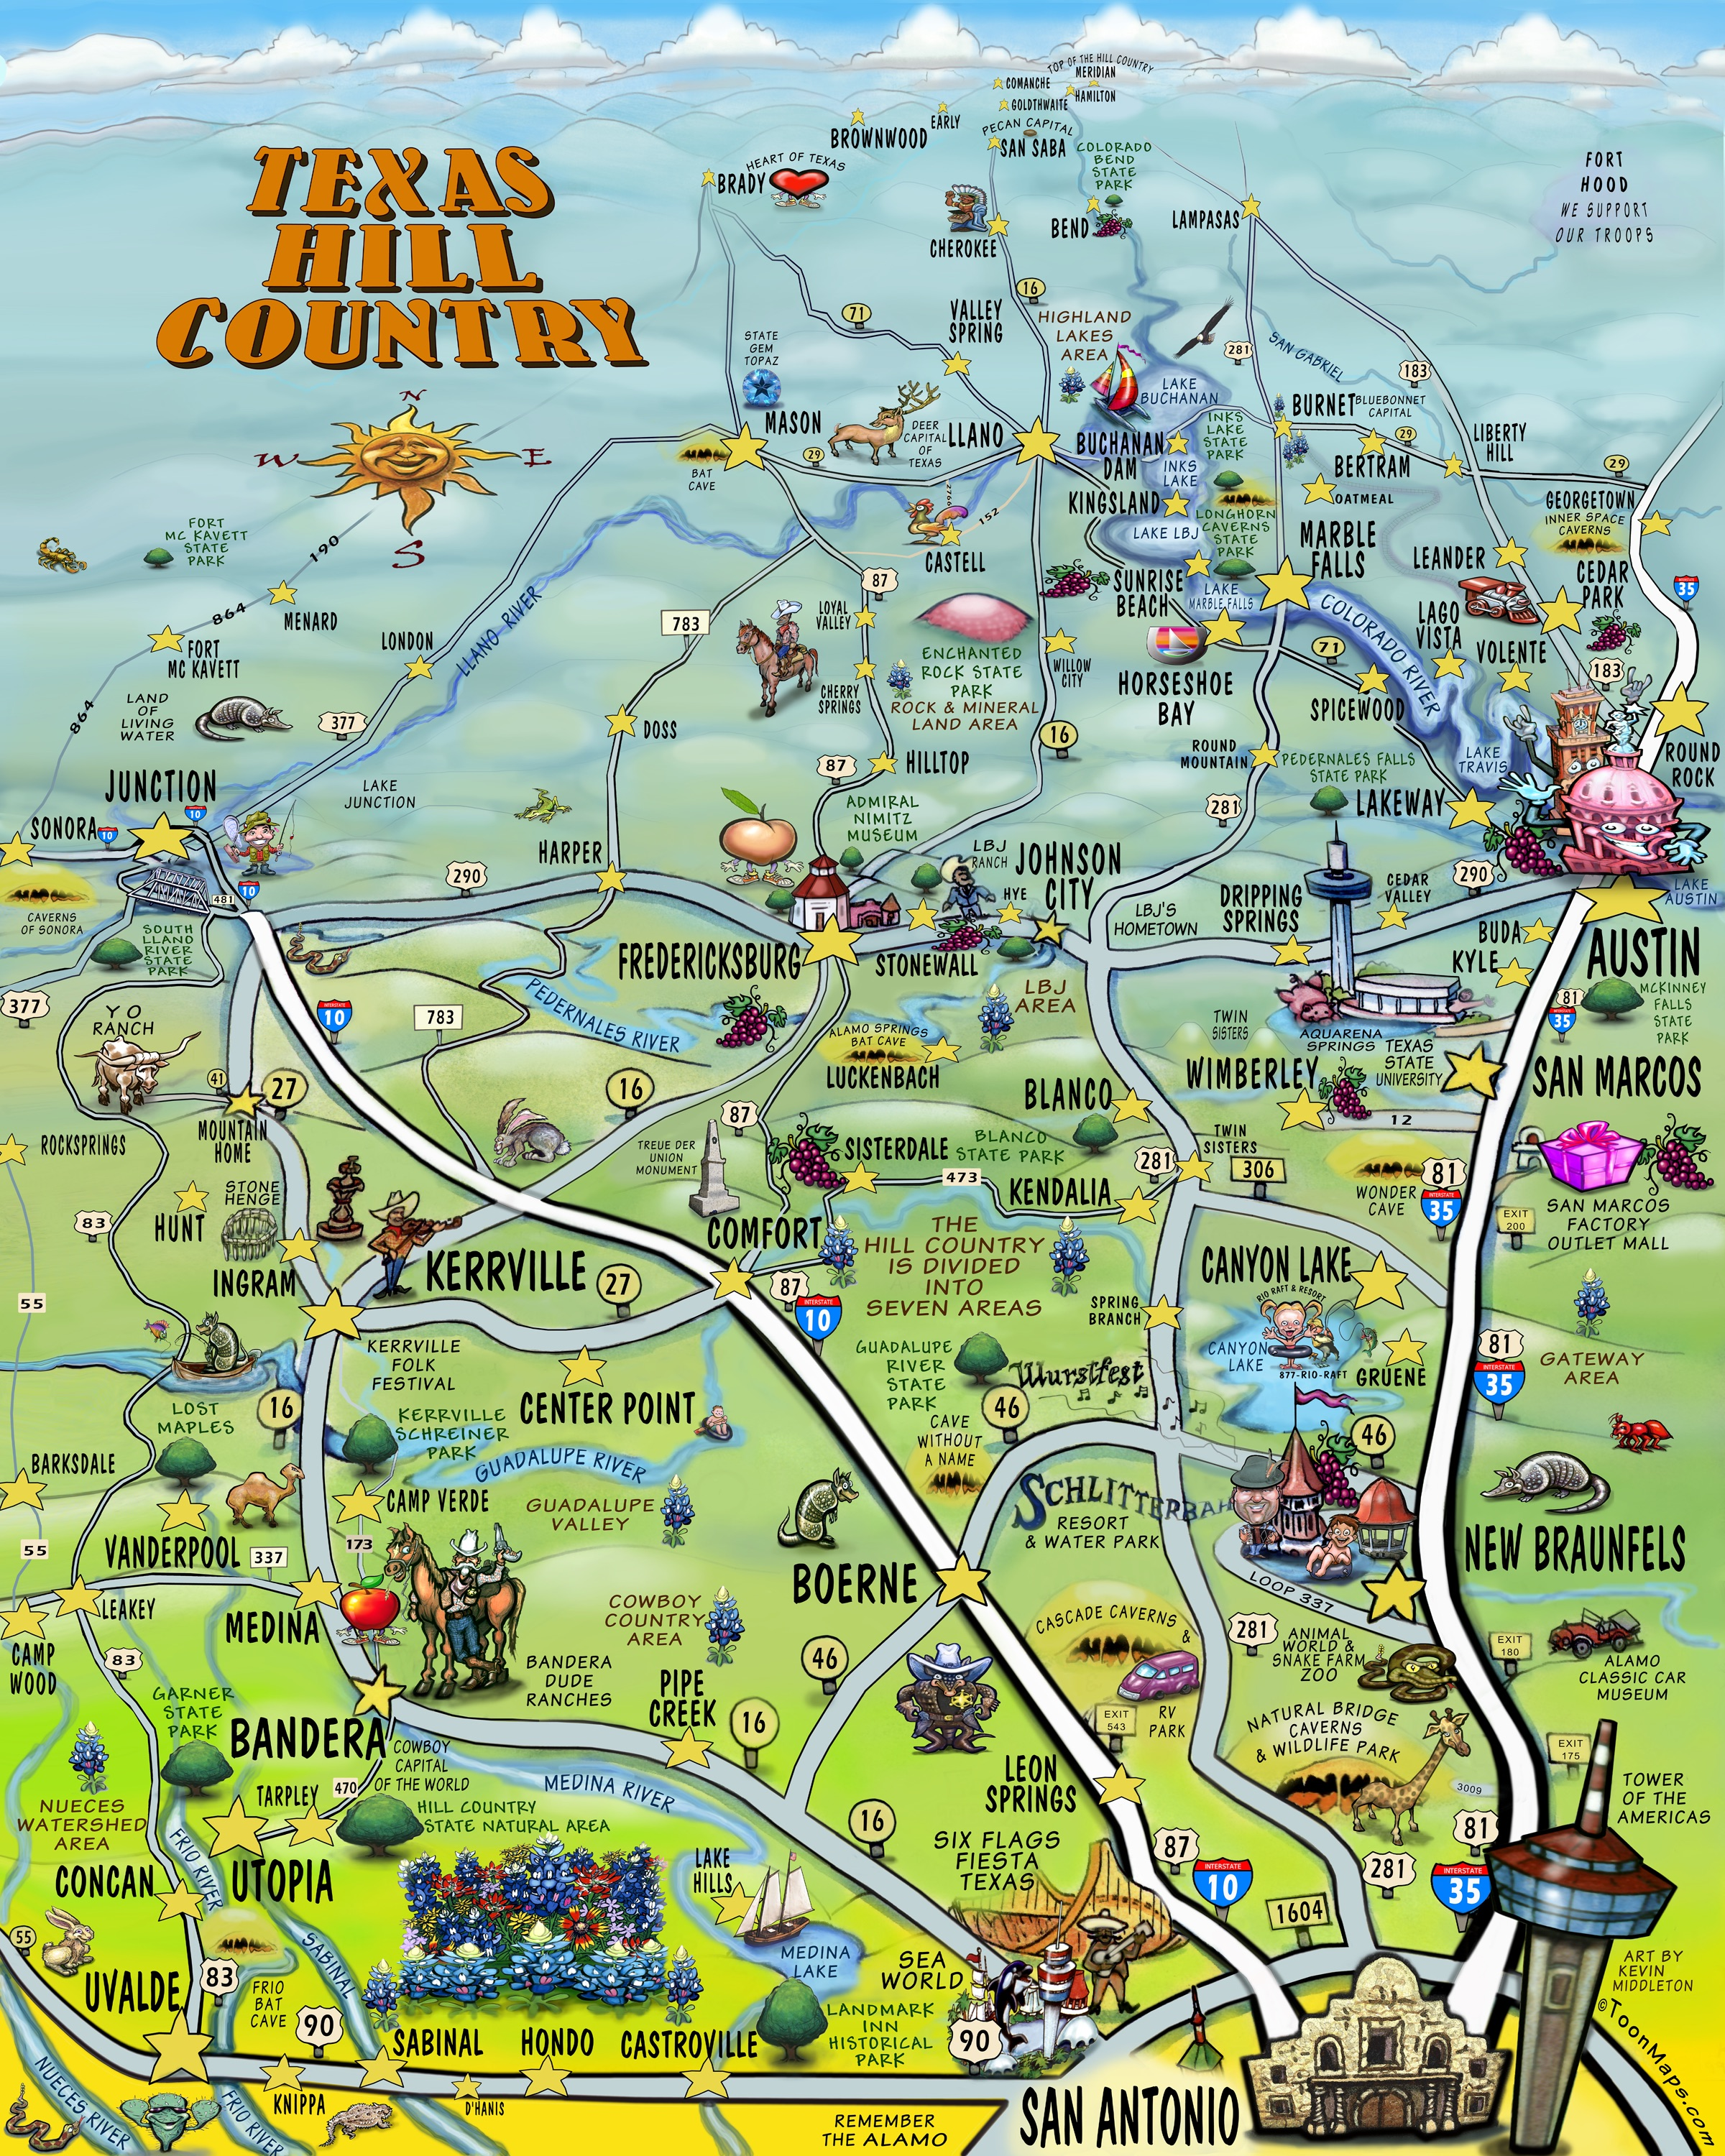 texas hill country invites san antonio to explore and discover the